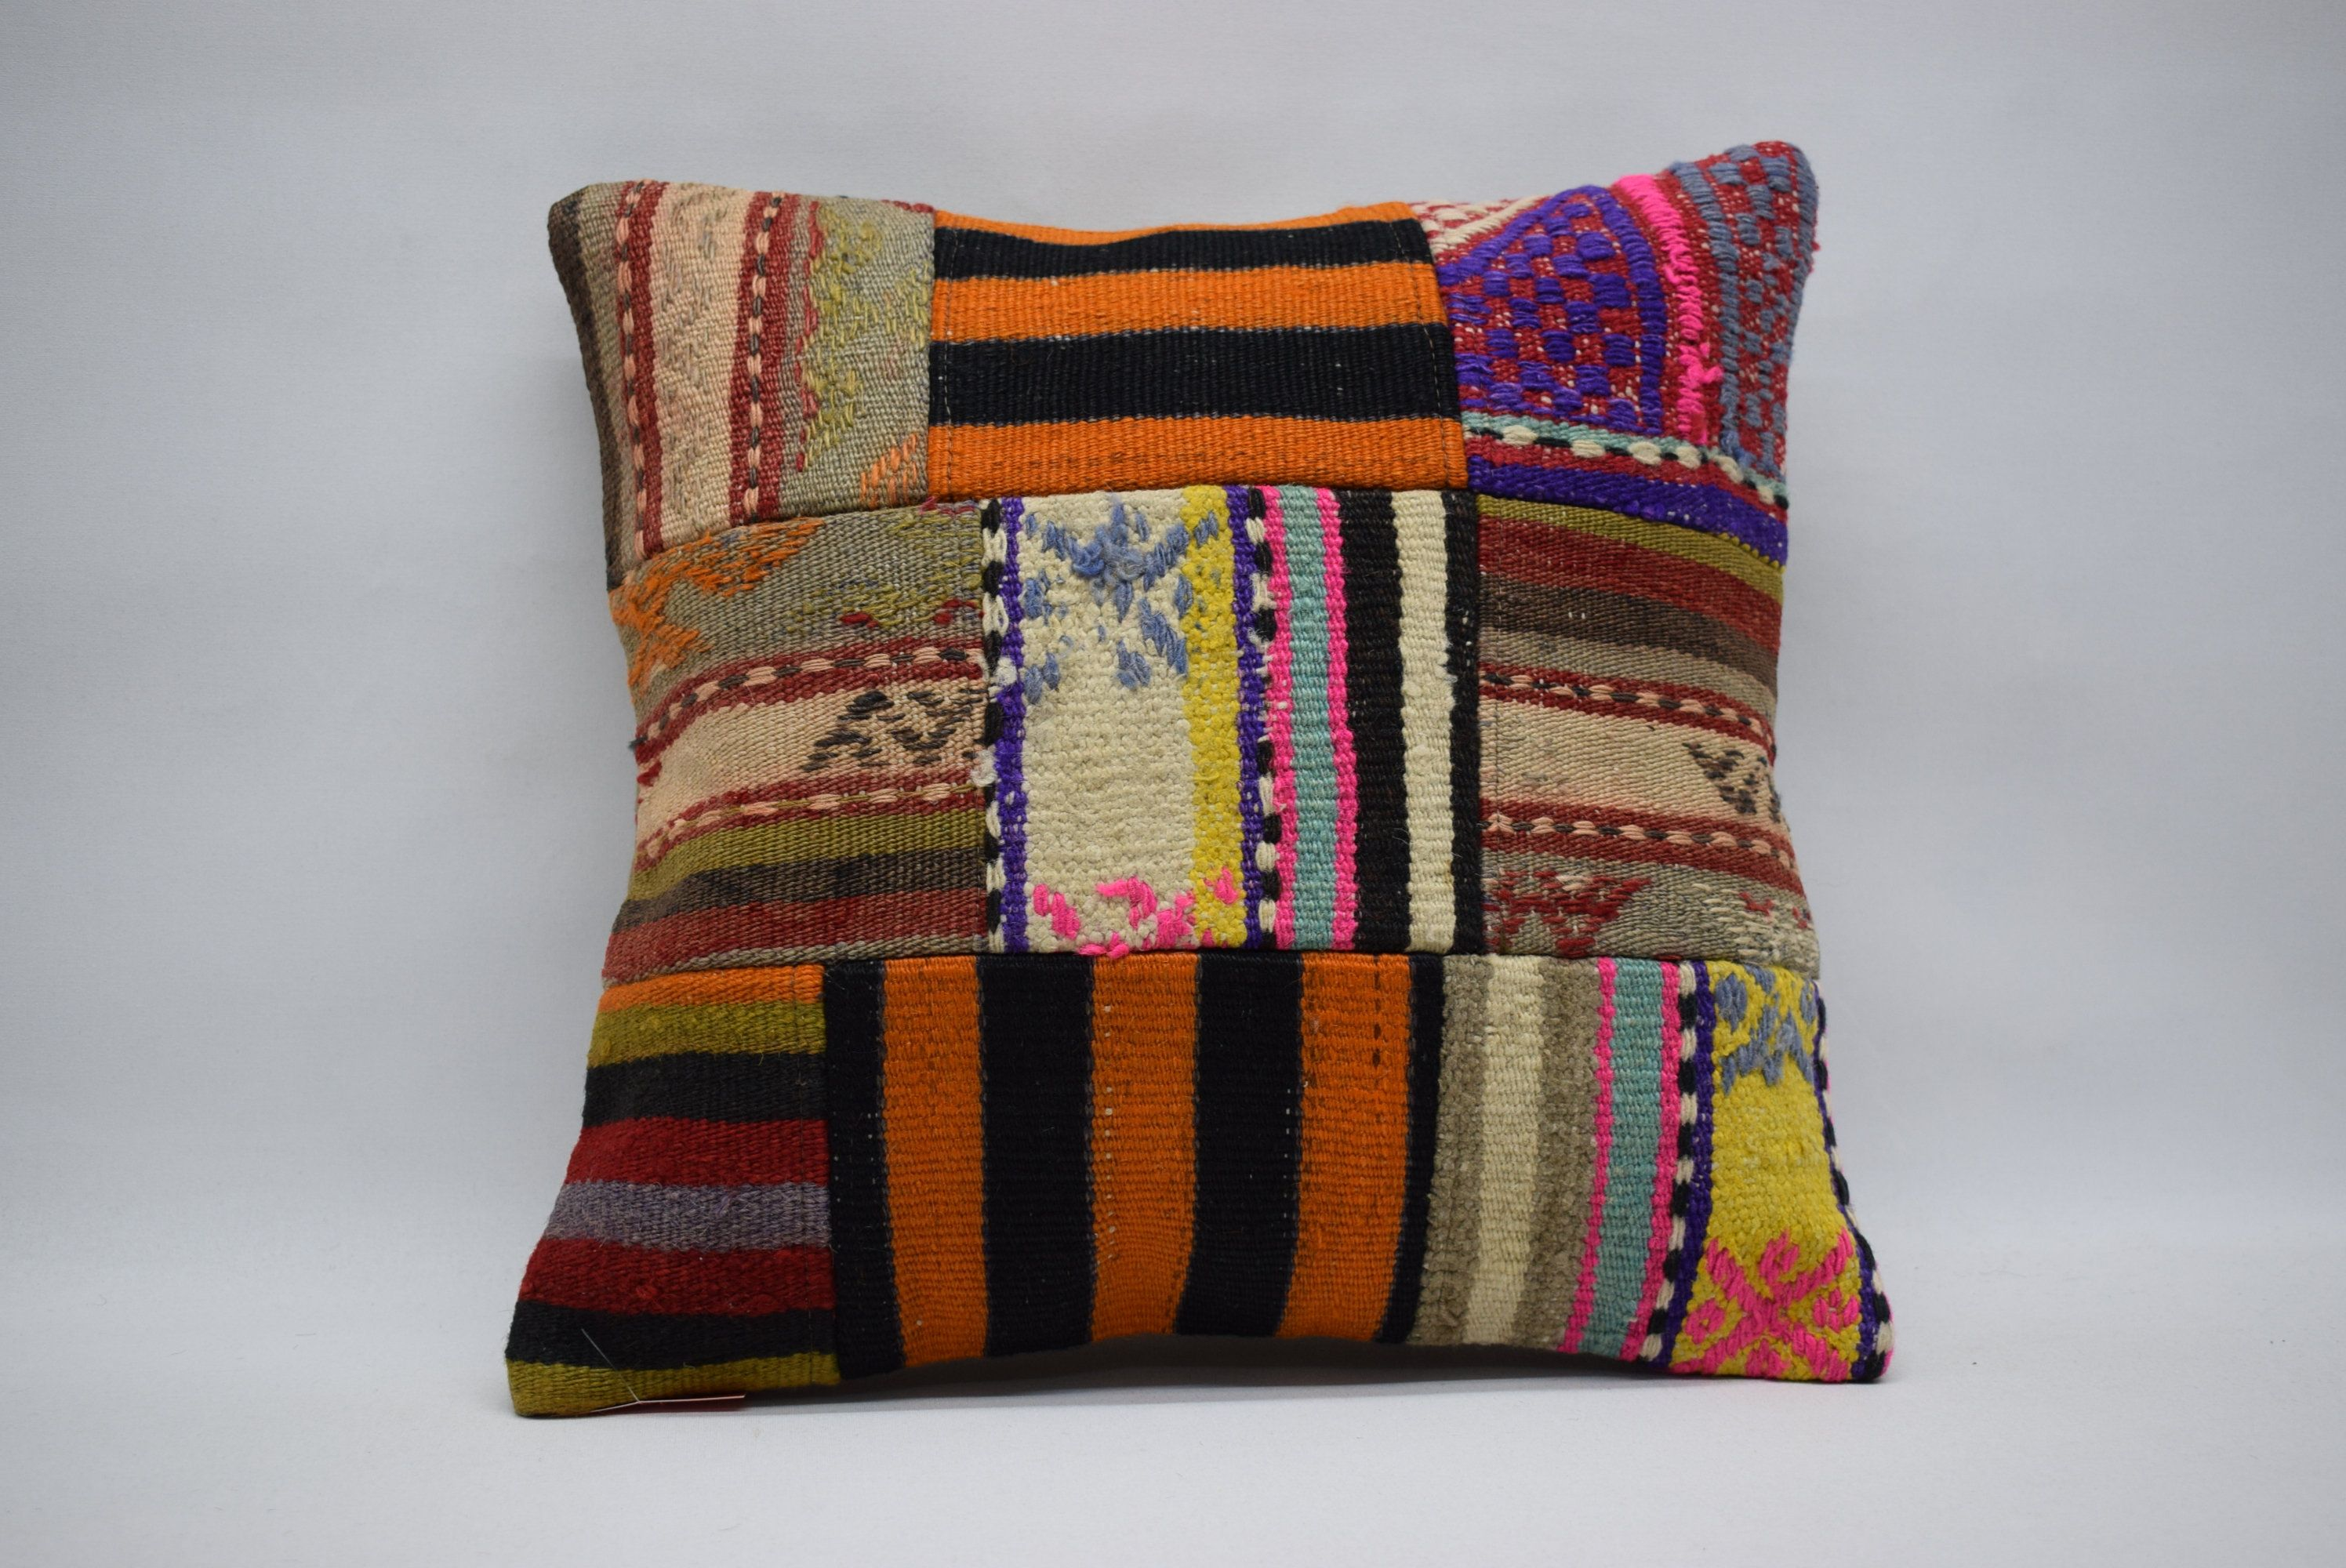 Patchwork kilim pillow handwoven kilim pillow boho pillow 16x16 naturel kilim pillow home decor cushion cover ethnic pillow 03473